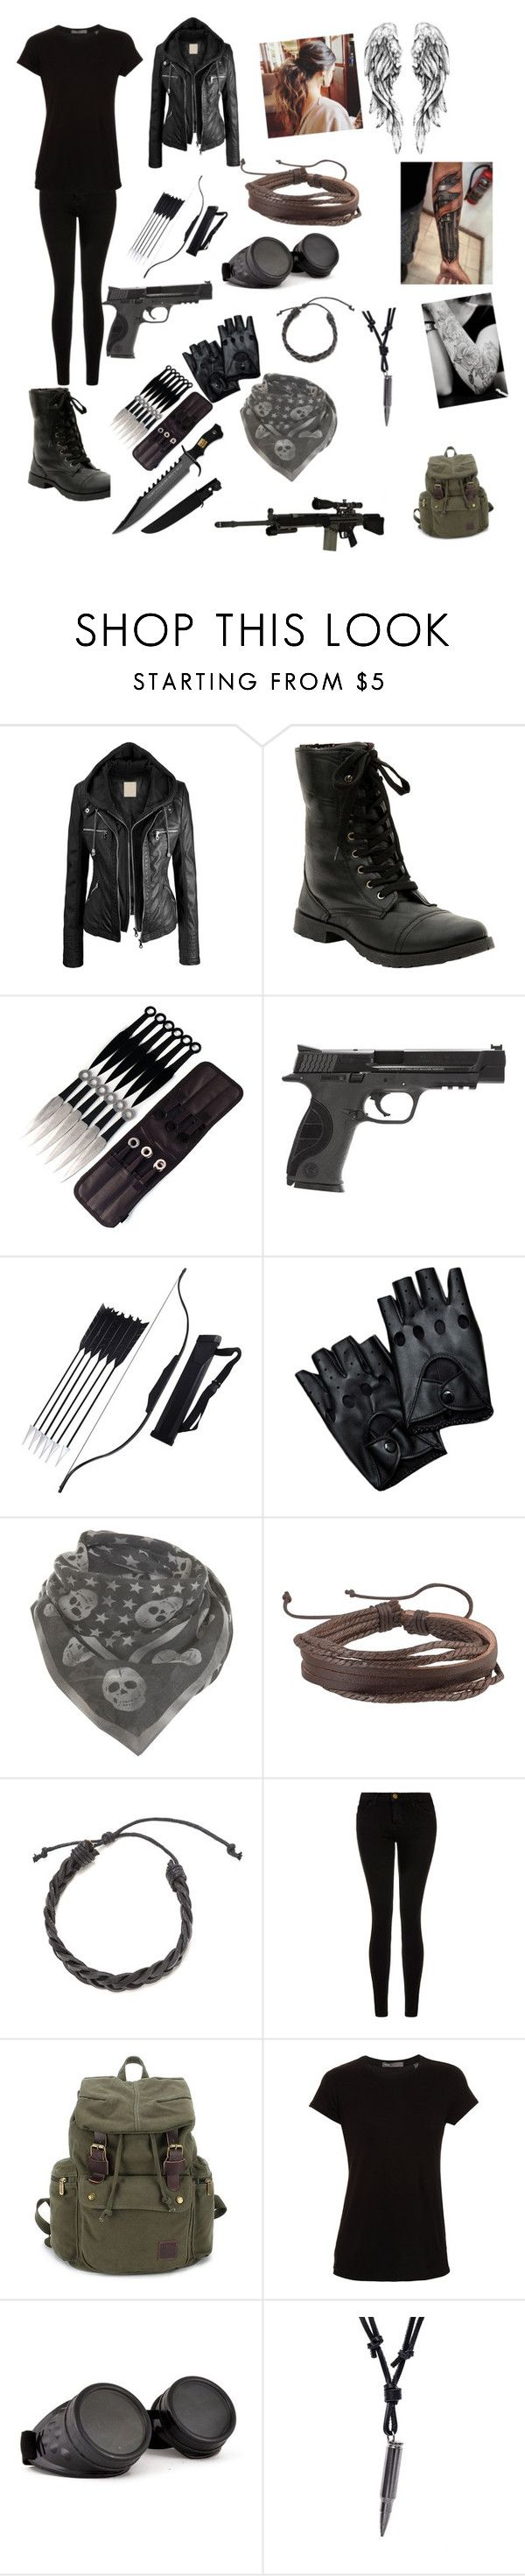 """""""Z Nation 10k"""" by classicrockgirl ❤ liked on Polyvore featuring Smith & Wesson, RIFLE, Miss Selfridge, Zodaca, Current/Elliott, Vince, GAS Jeans, women's clothing, women and female"""